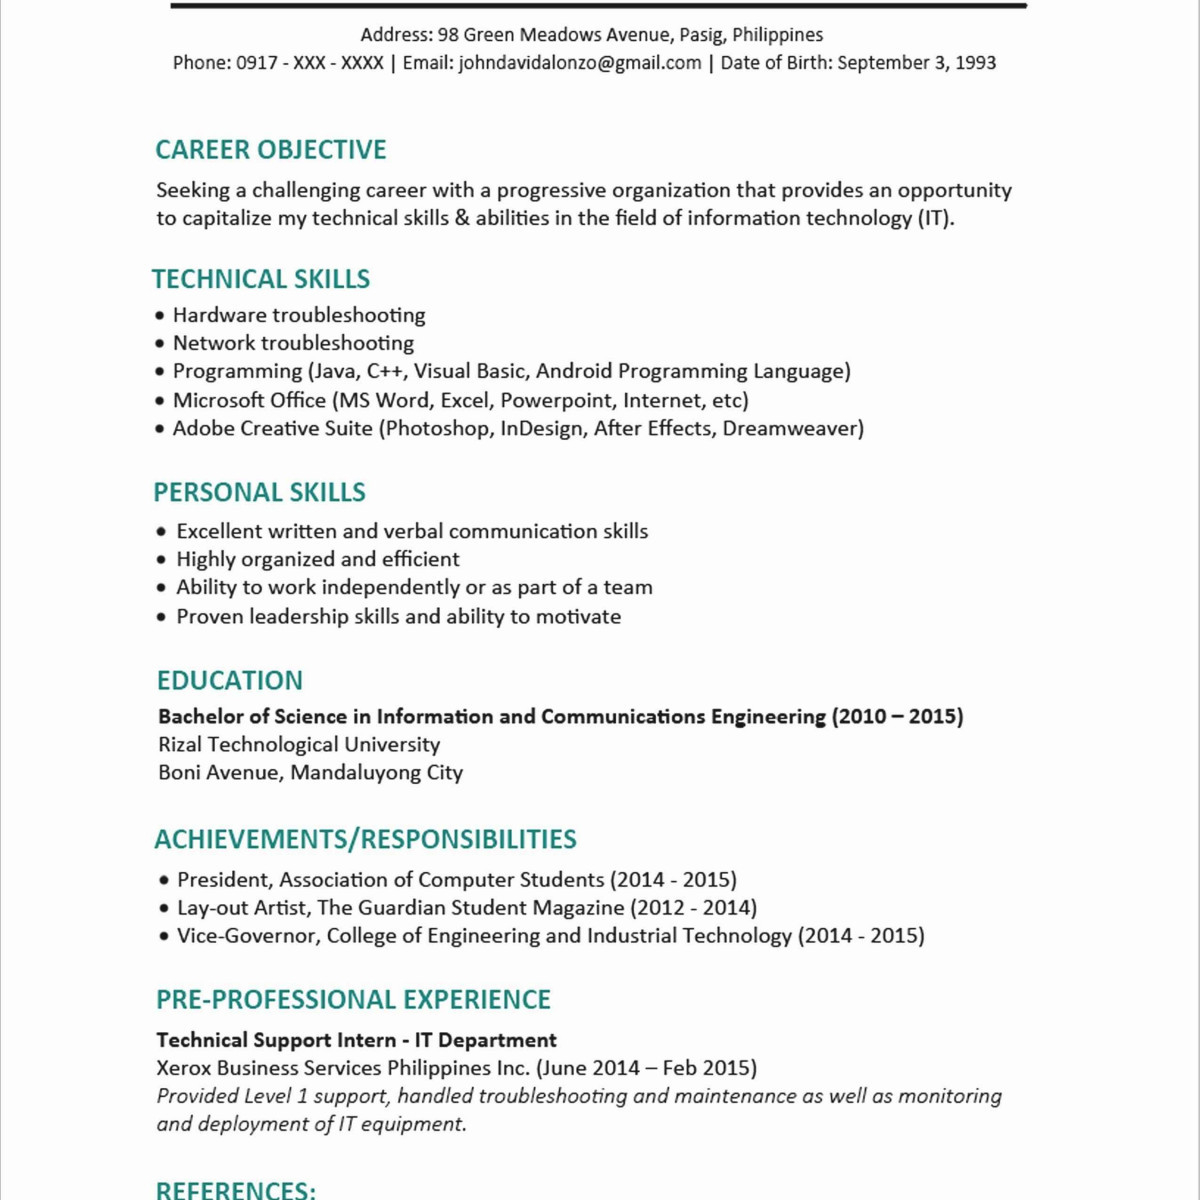 high school scholarship resume example-scholarship resume beautiful resume templates elegant scholarship resume example 2018 fresh resume for highschool students excellent resumes 0d resume 1-r